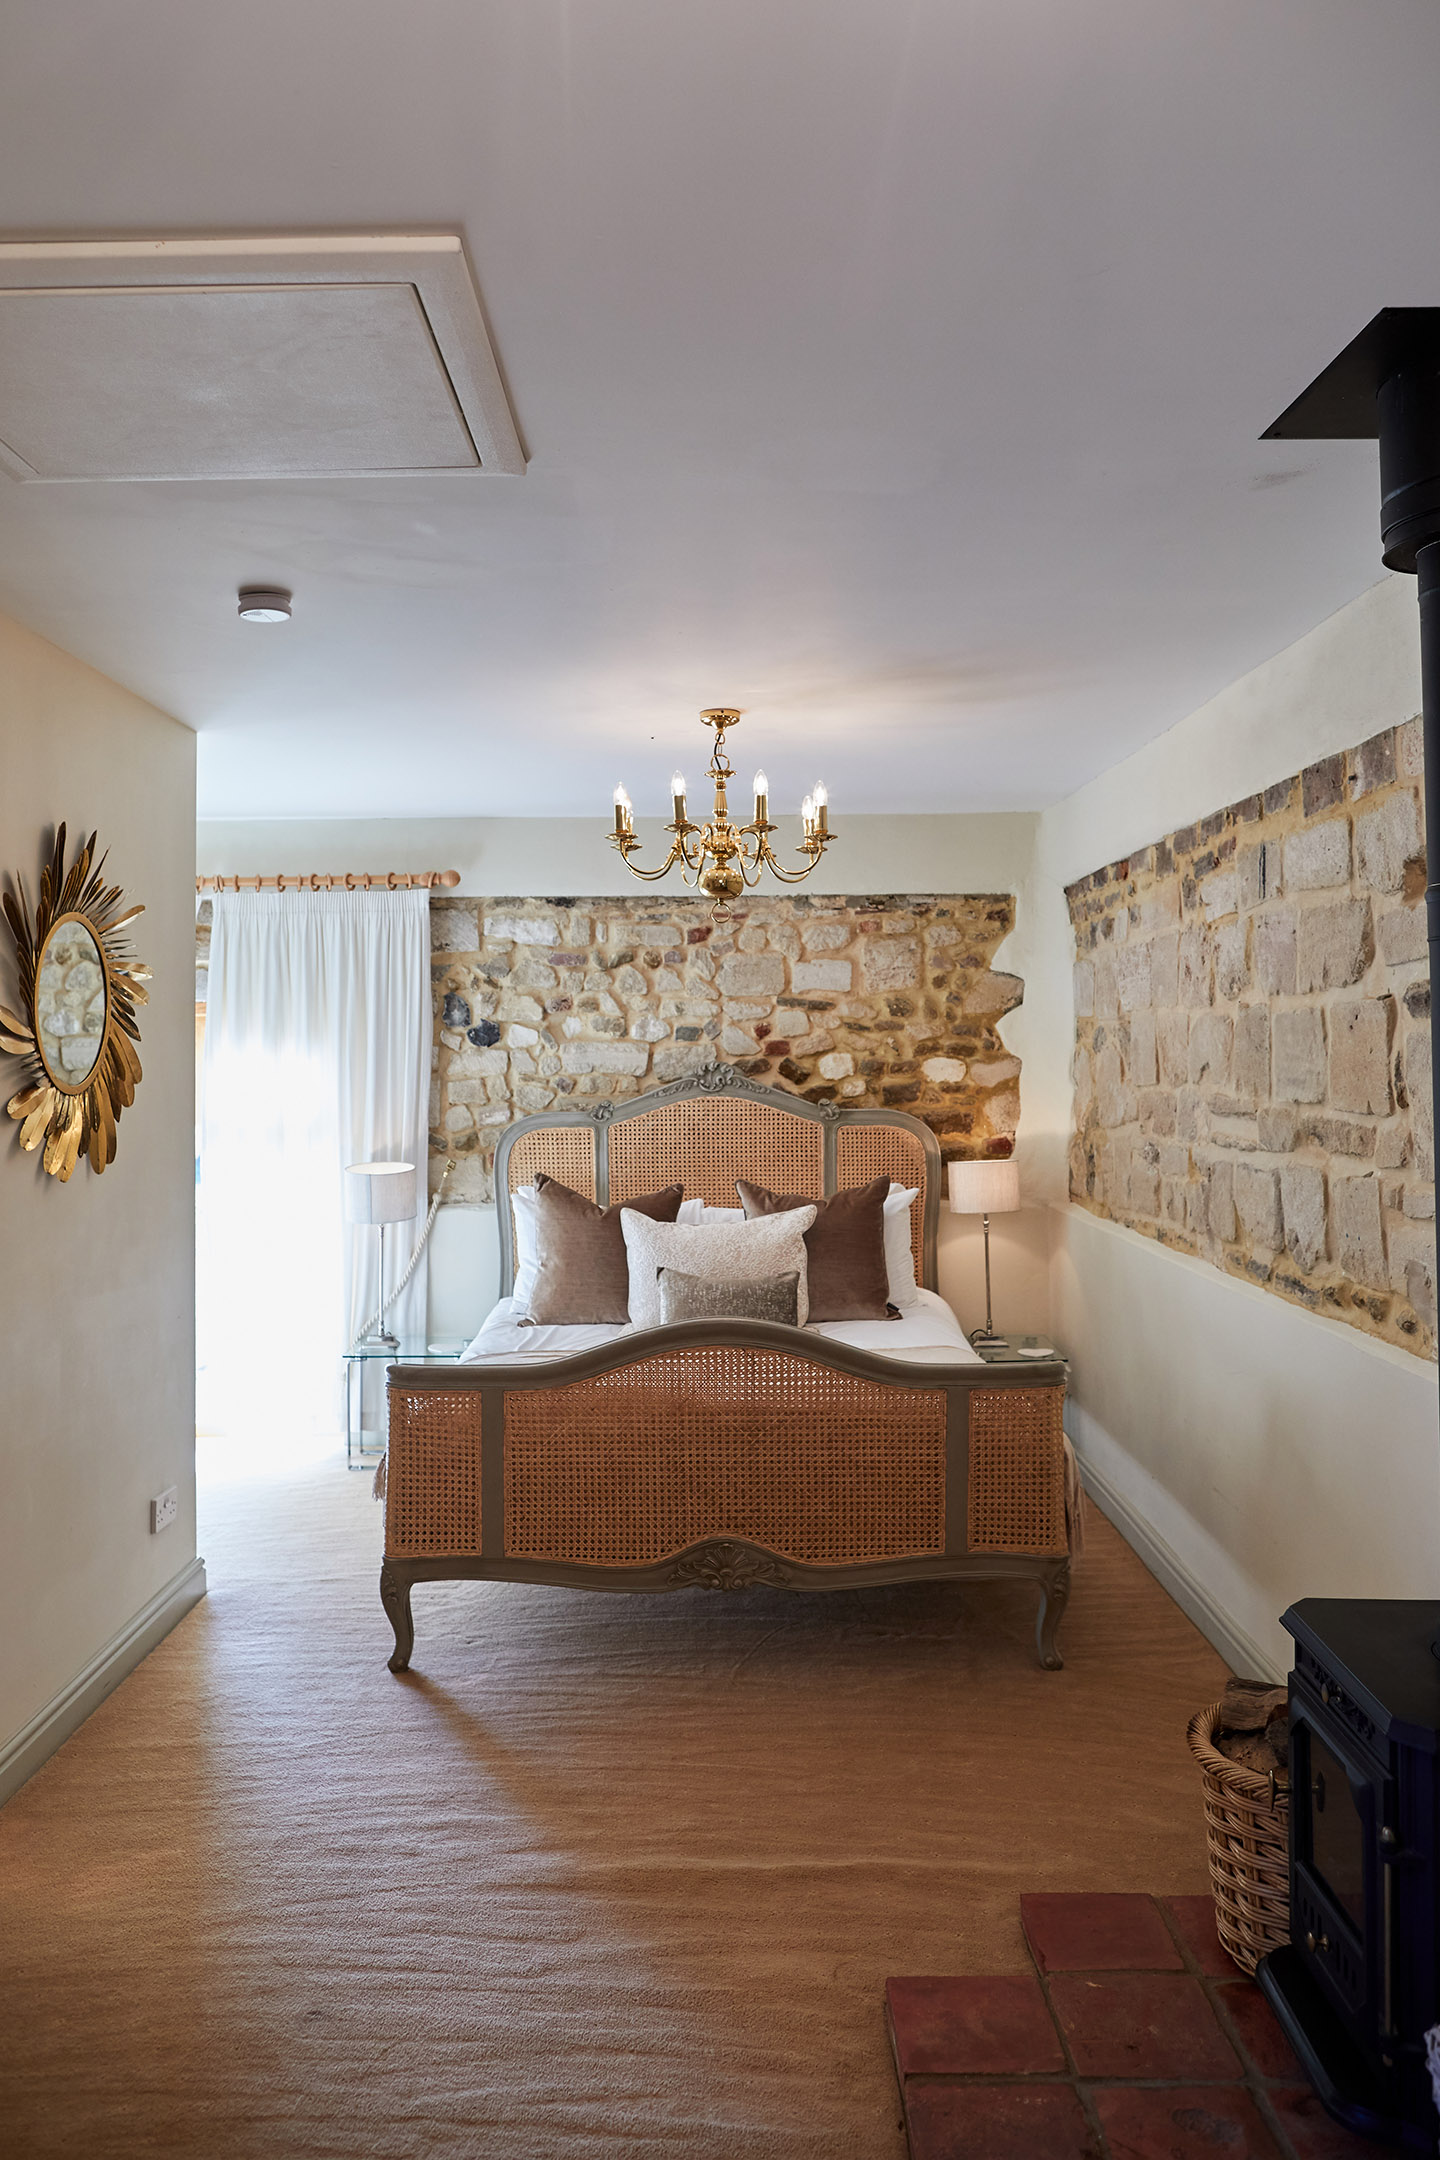 The honeymoon suite at Pentney Abbey exclusive use wedding venue